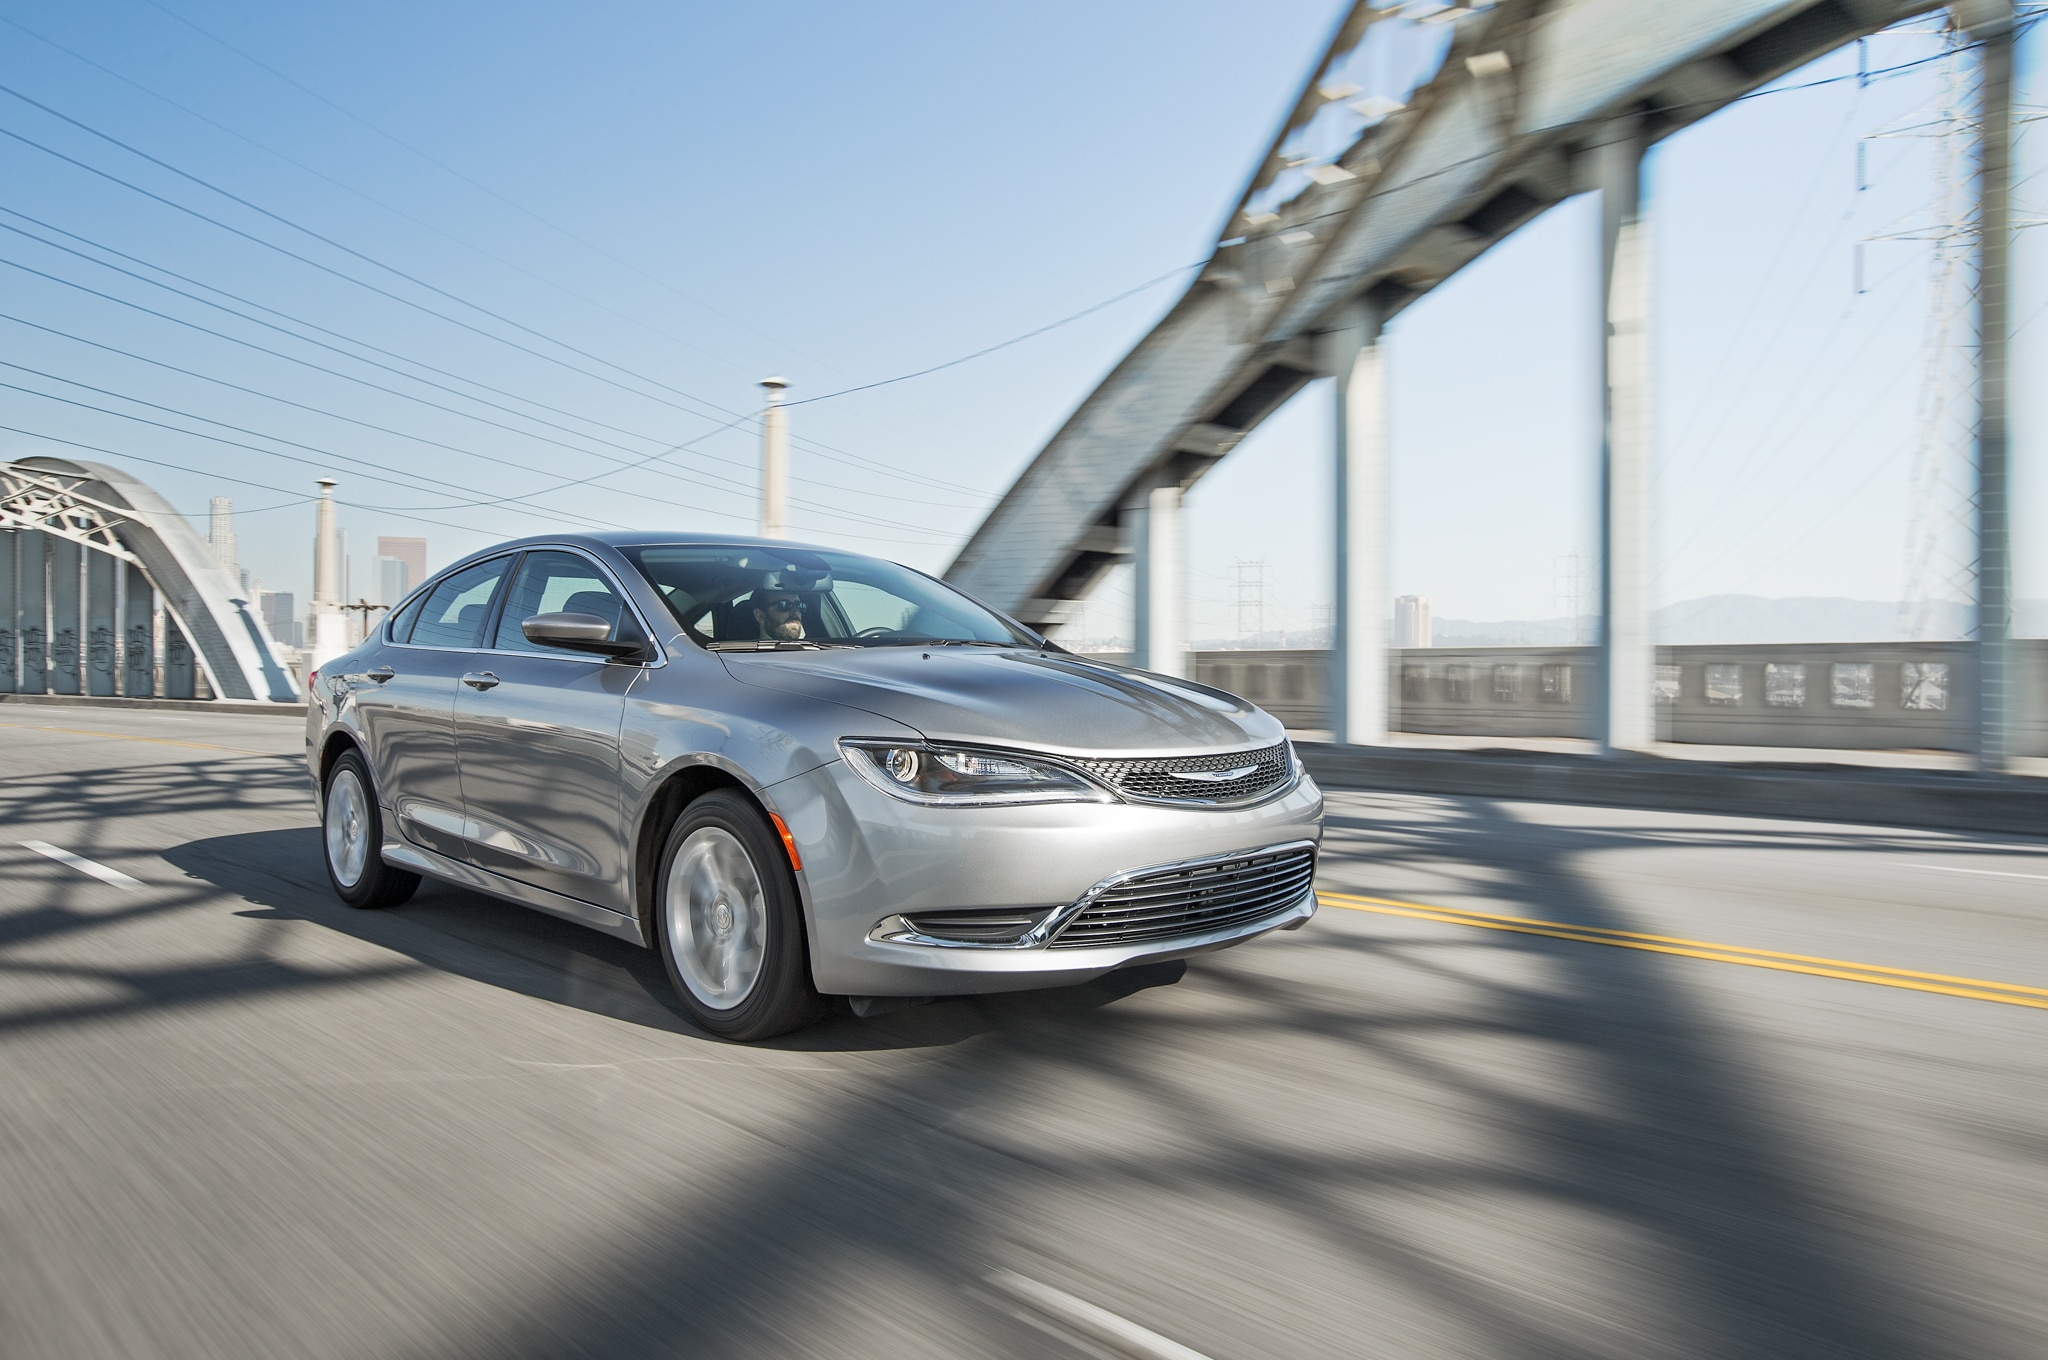 Used Chrysler 200 For Sale  CarGurus